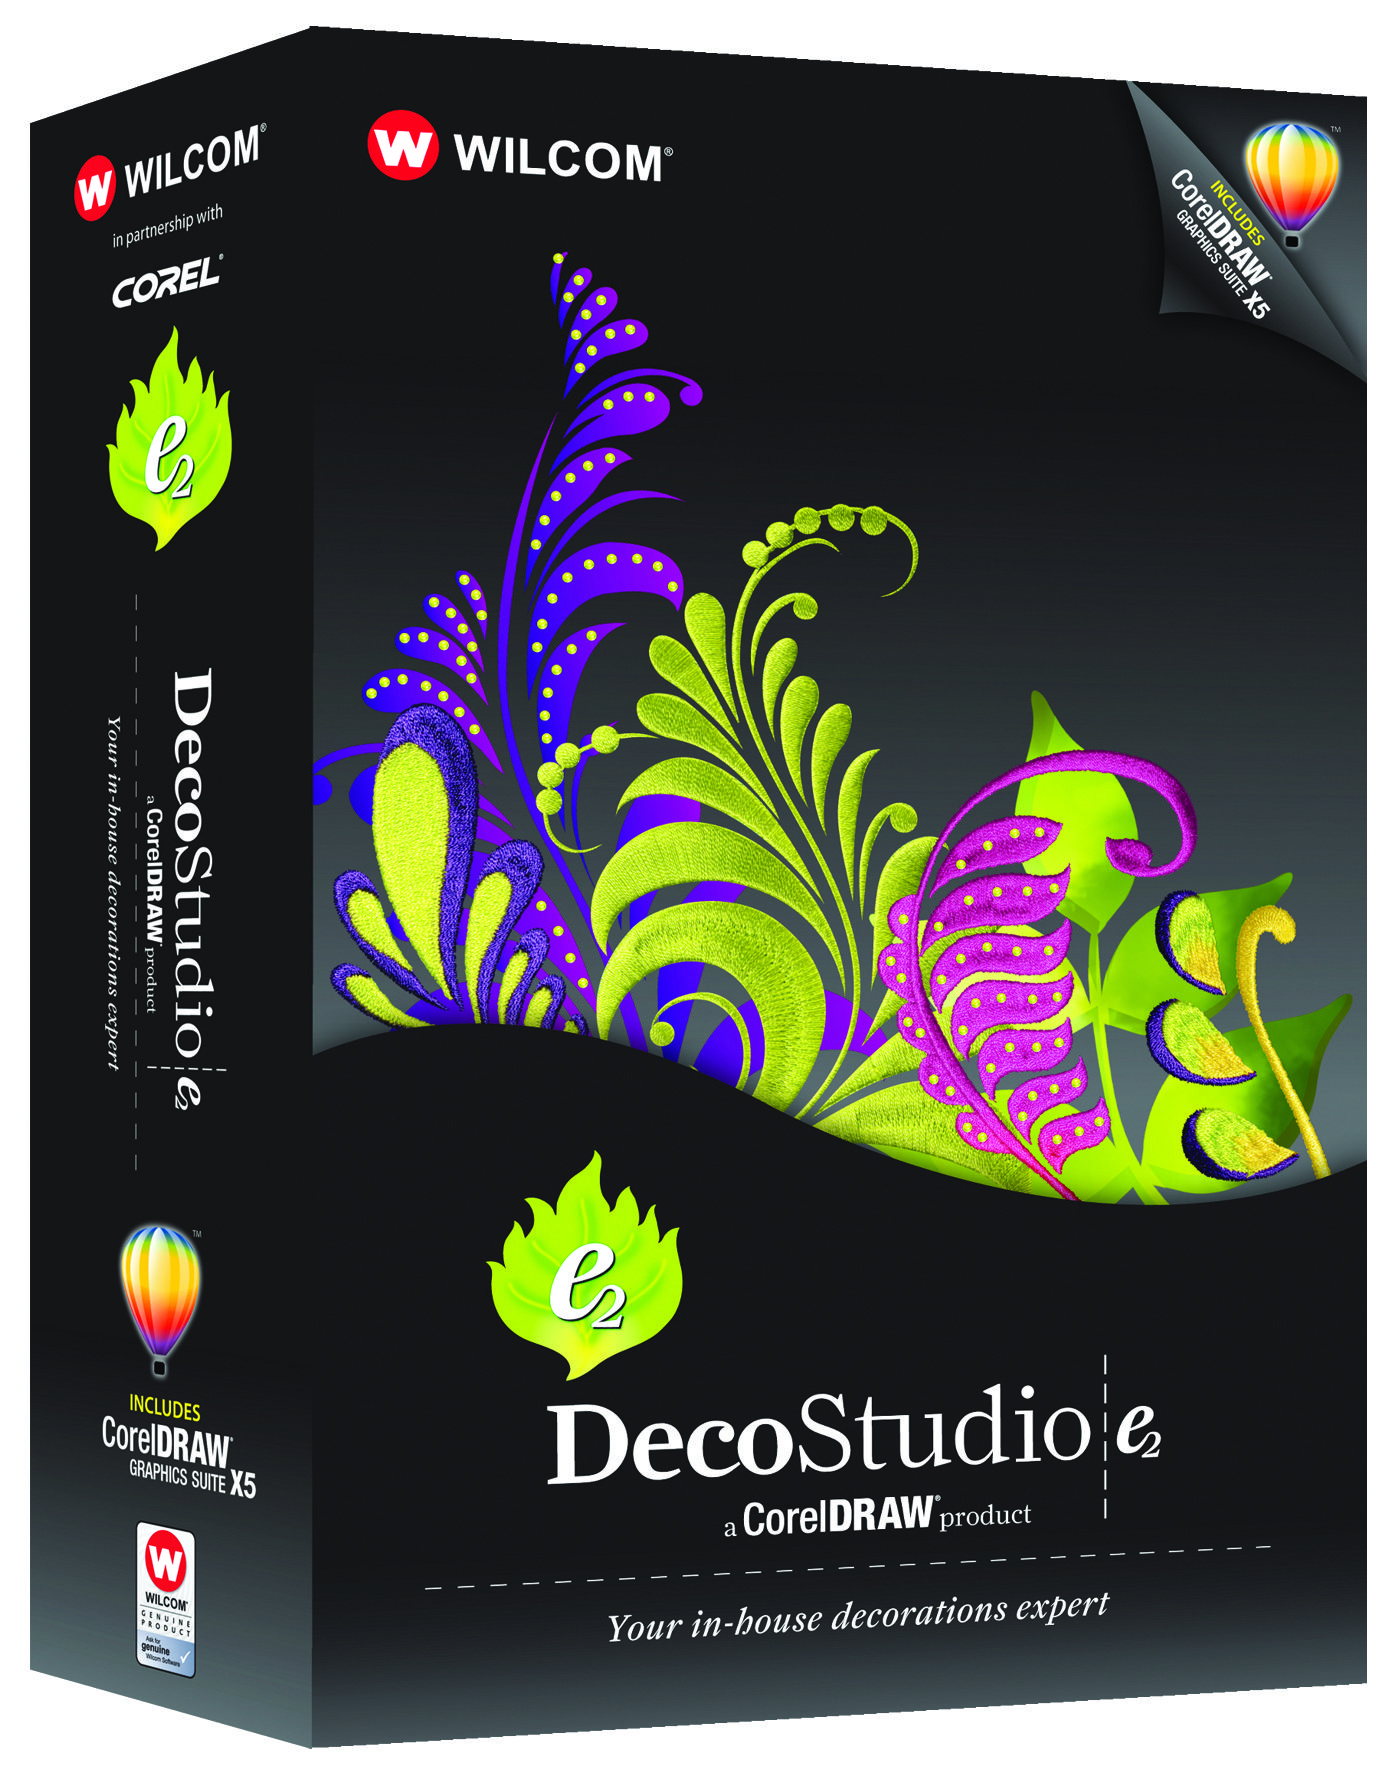 The DecoStudio e2 is design software for embroidery, printing, laser